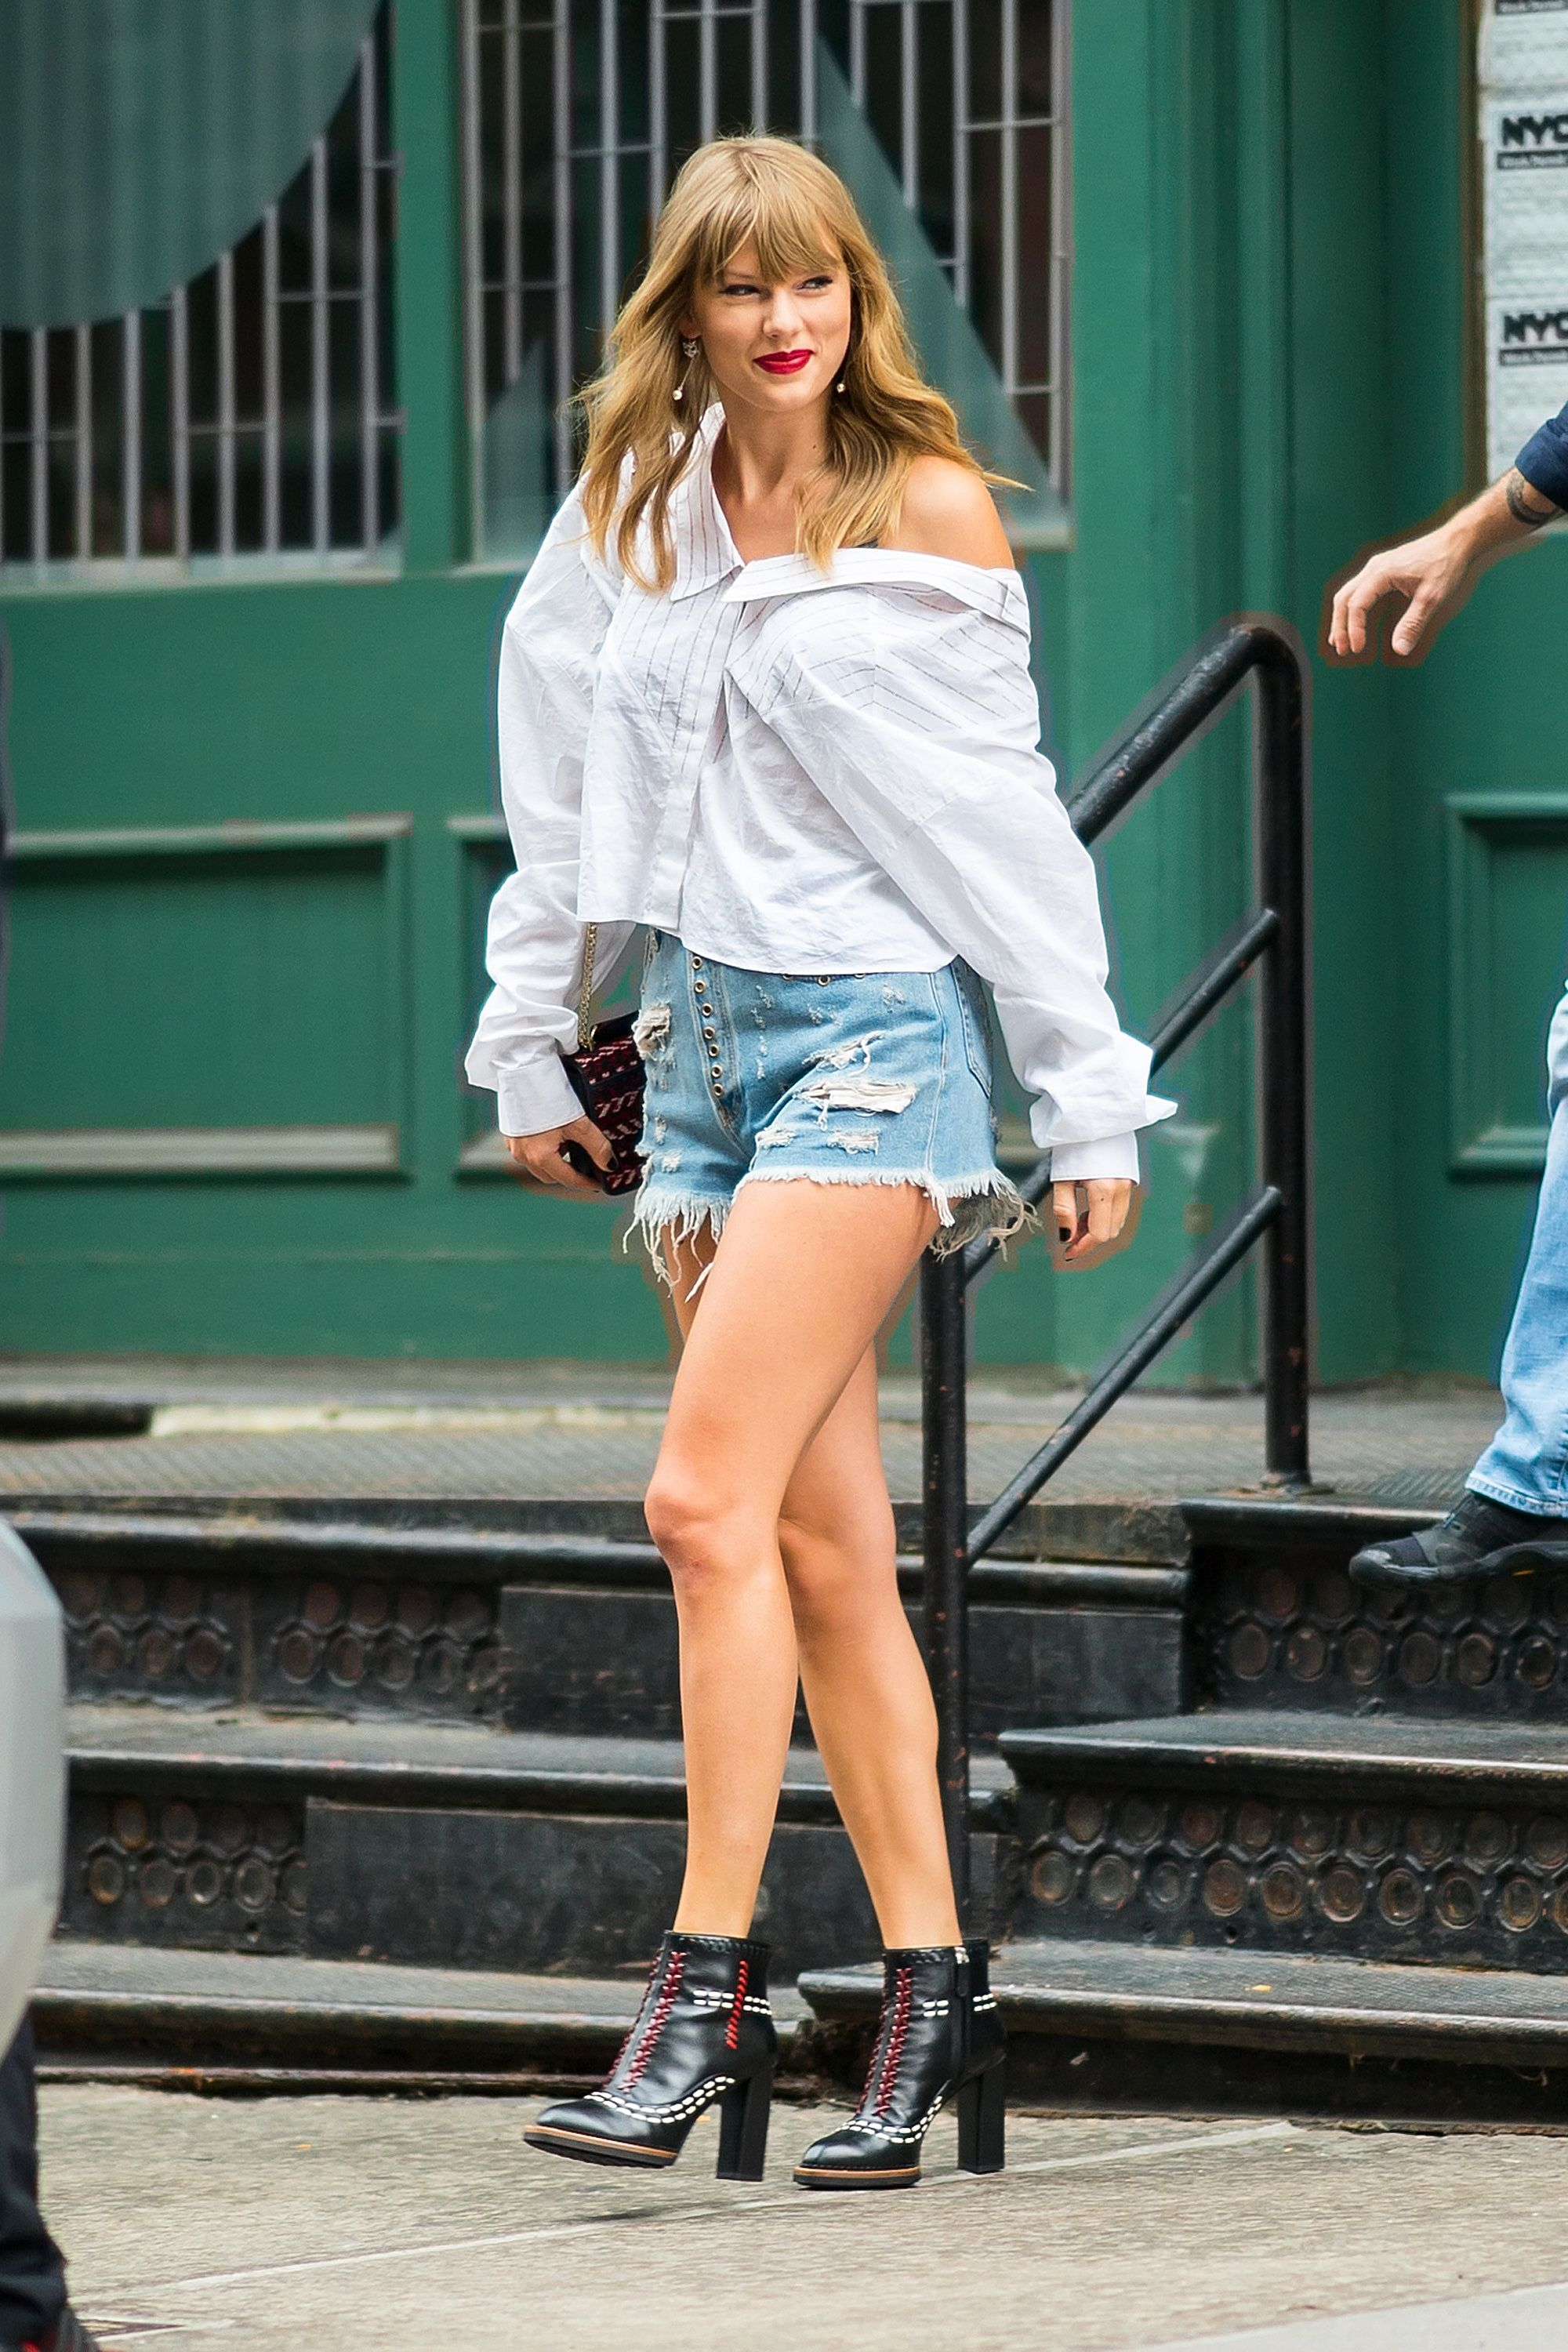 Taylor Swift In Denim Crop Top And Shorts Fashion And Beauty Pictures Of Taylor Swift